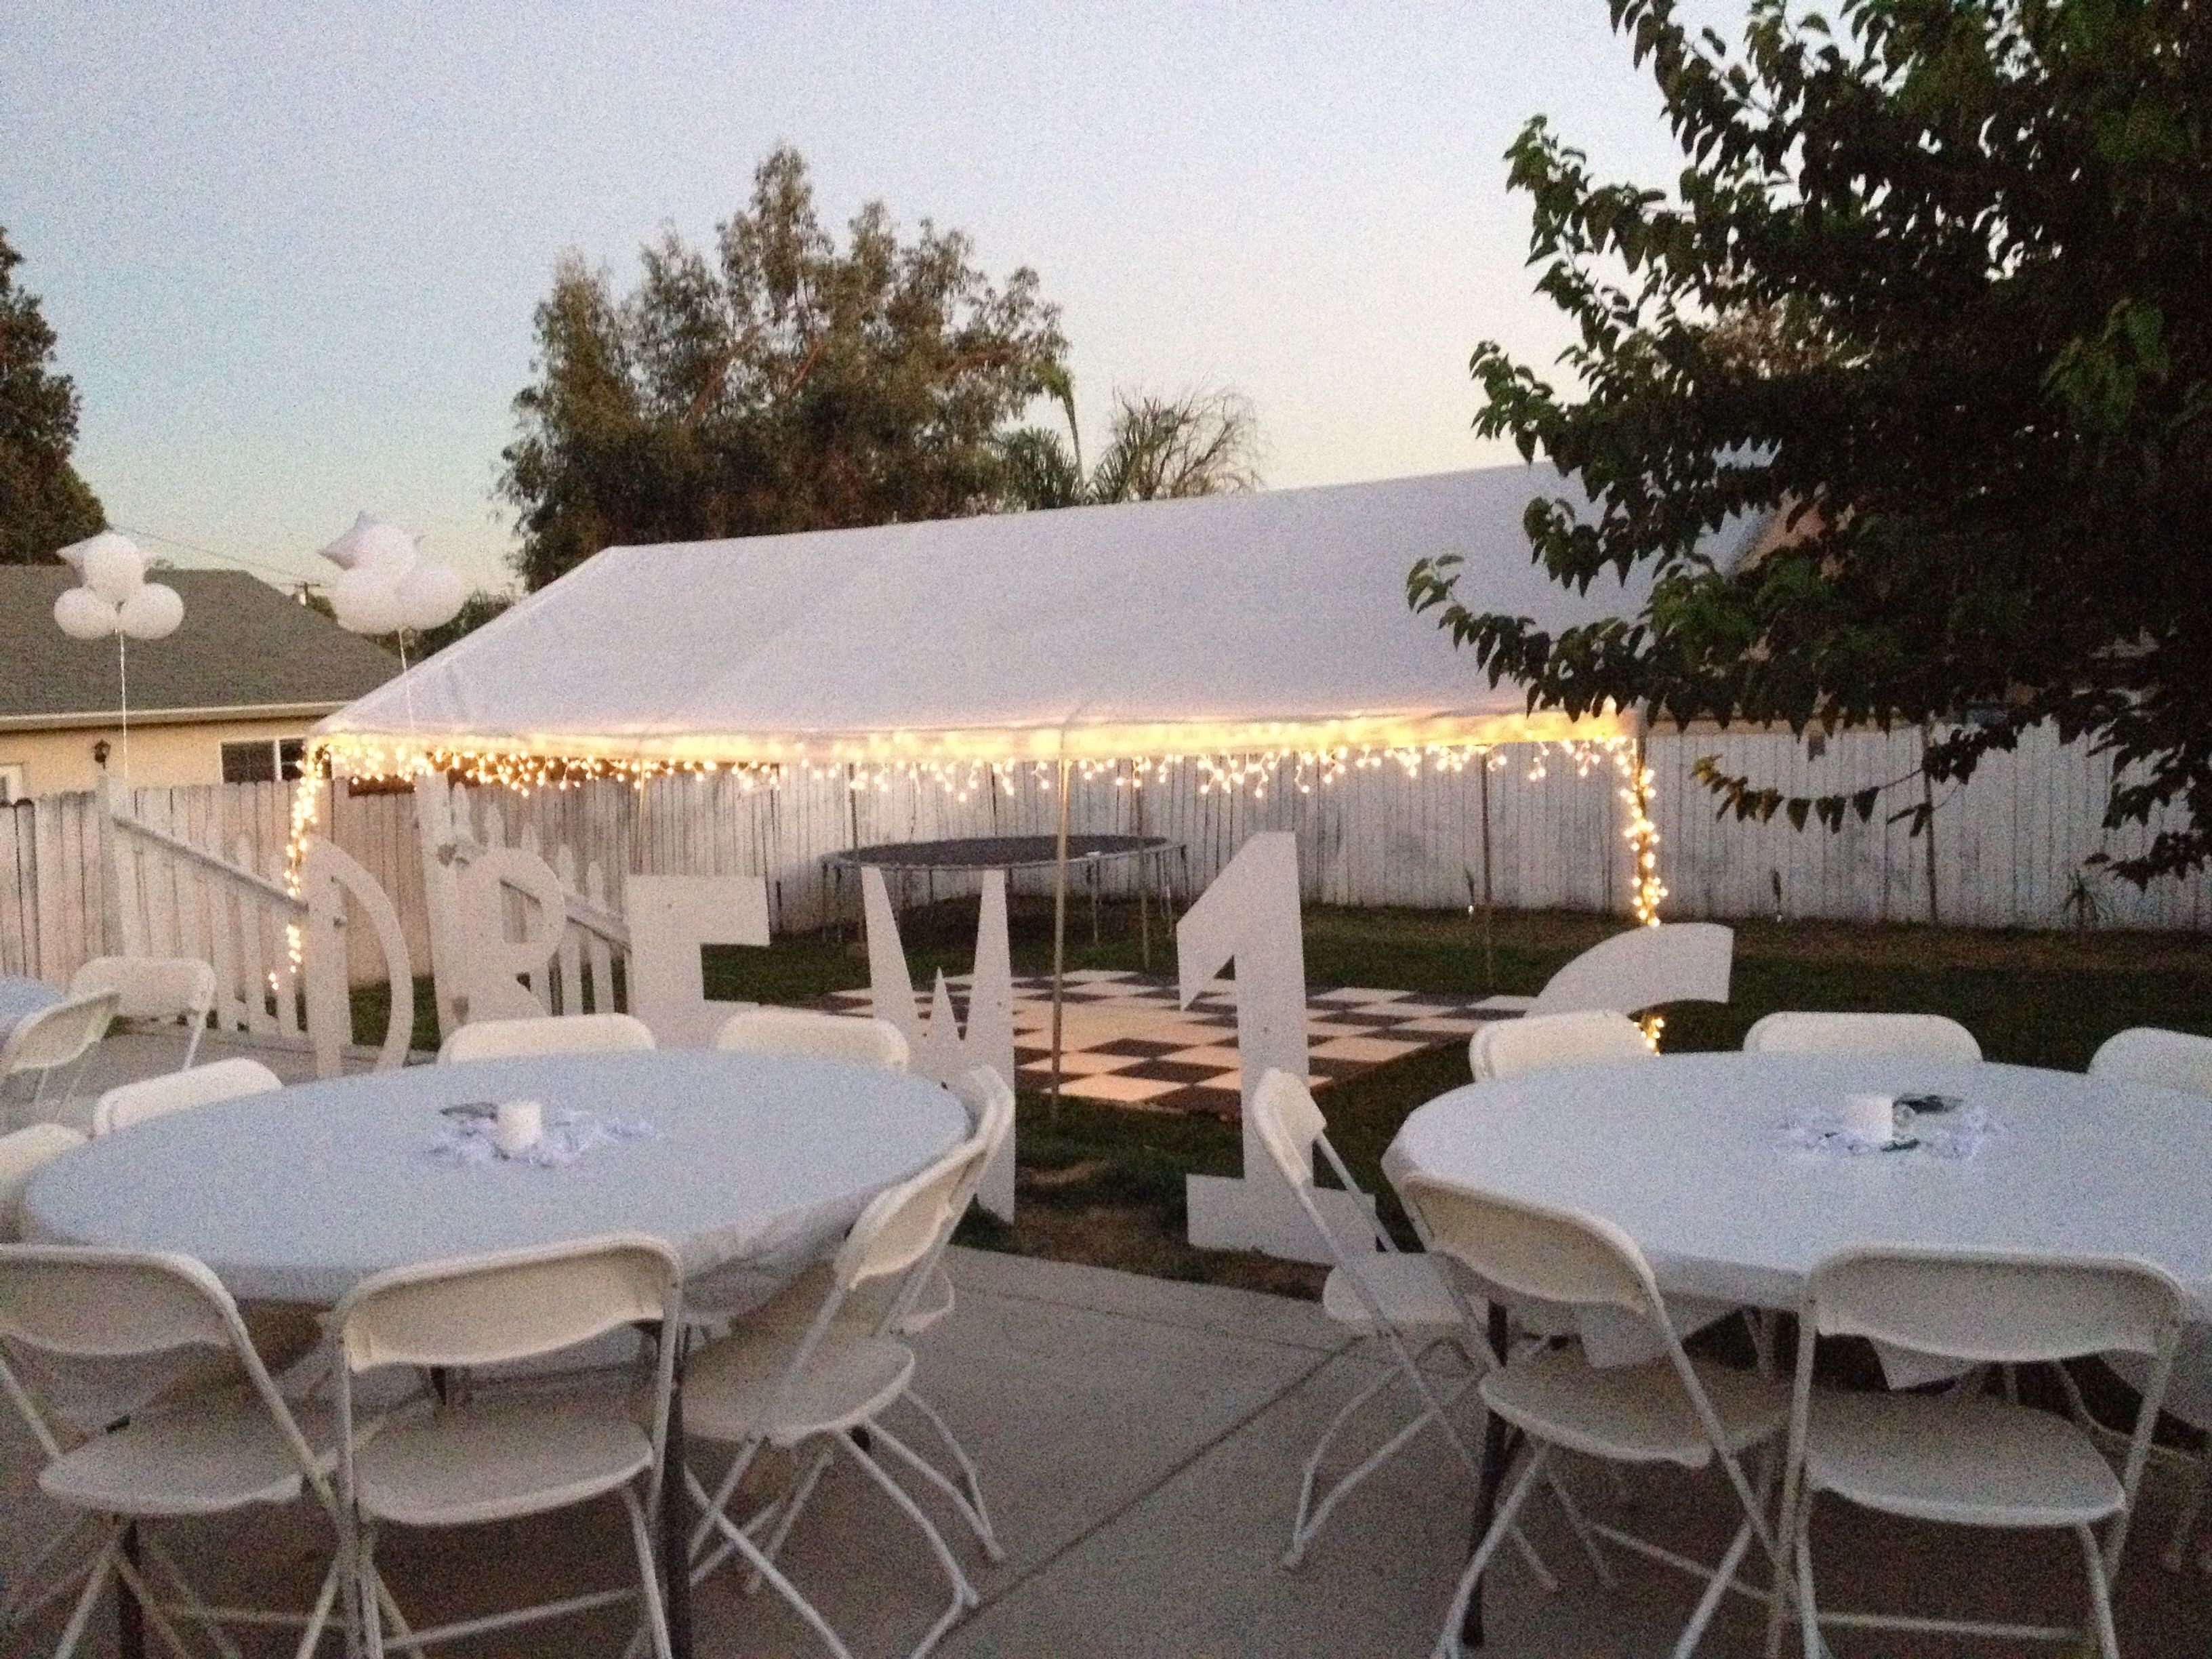 All White Party Backyard Set Up